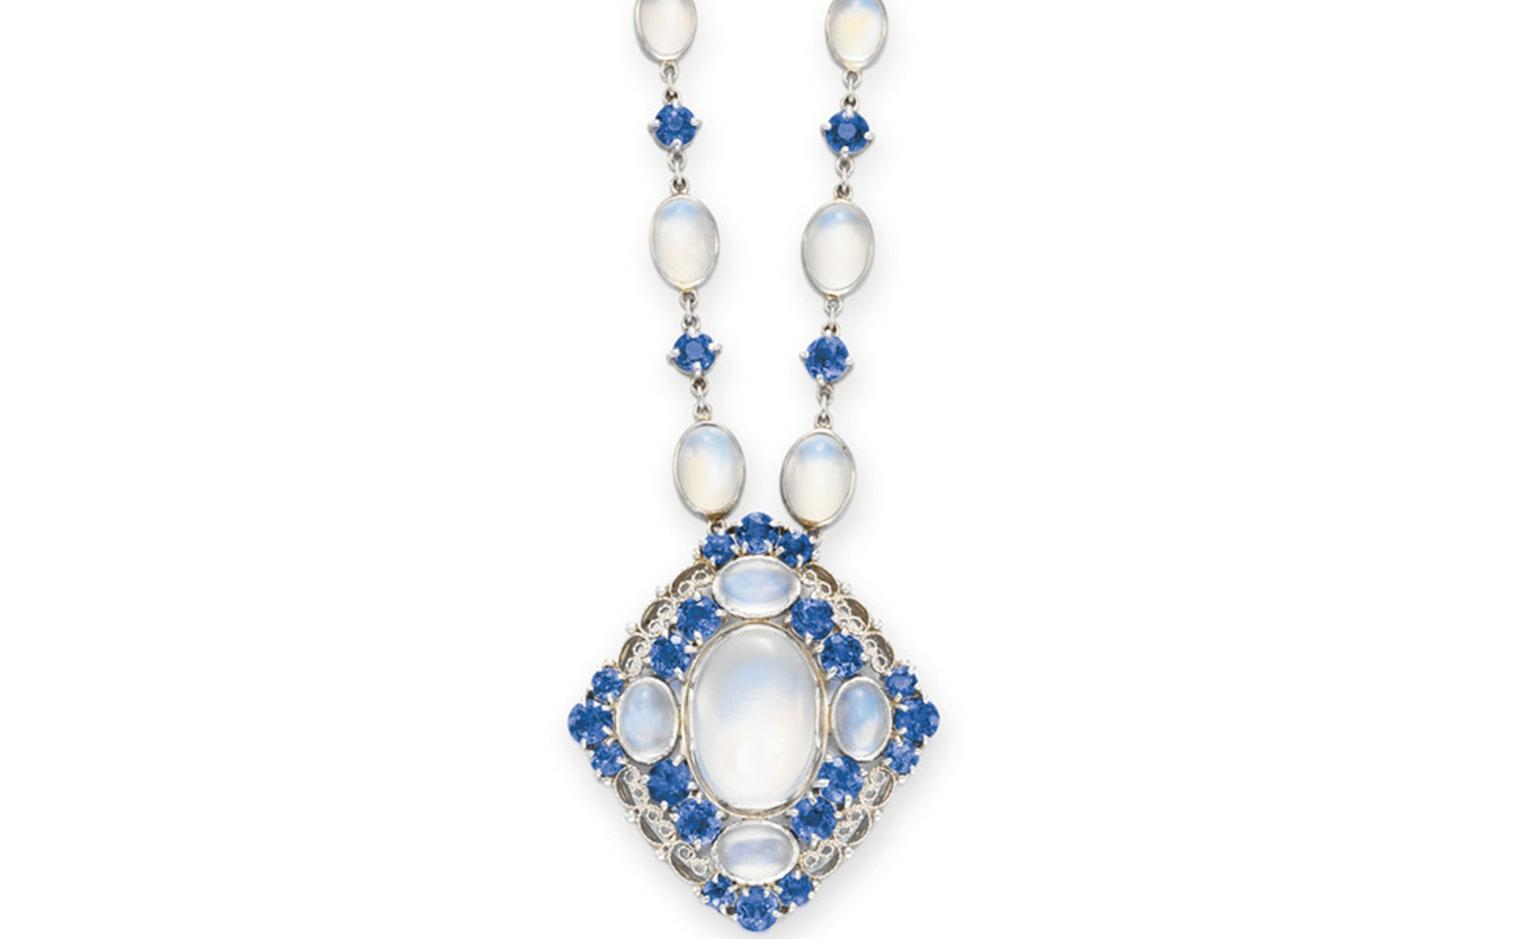 LOT 49 A MOONSTONE AND SAPPHIRE NECKLACE, BY LOUIS COMFORT TIFFANY, TIFFANY & CO. S circa 1915, 16½ ins. (backchain of later addition) By Louis Comfort Tiffany, signed Tiffany & Co. Estimate $10,000-$15,000 SOLD FOR $40,000